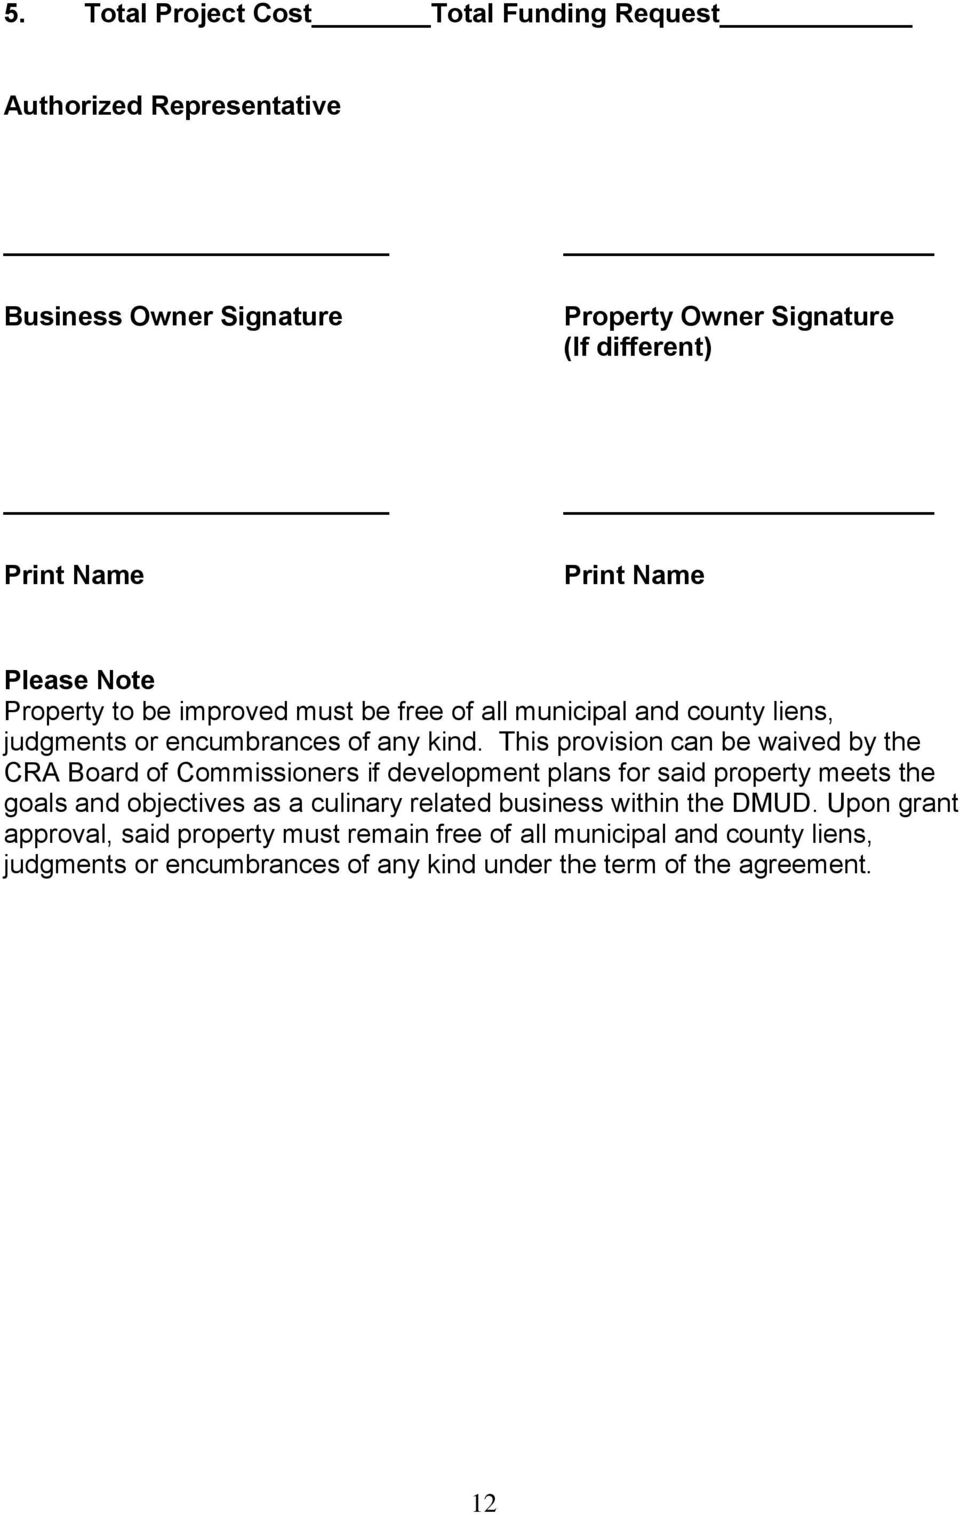 This provision can be waived by the CRA Board of Commissioners if development plans for said property meets the goals and objectives as a culinary related